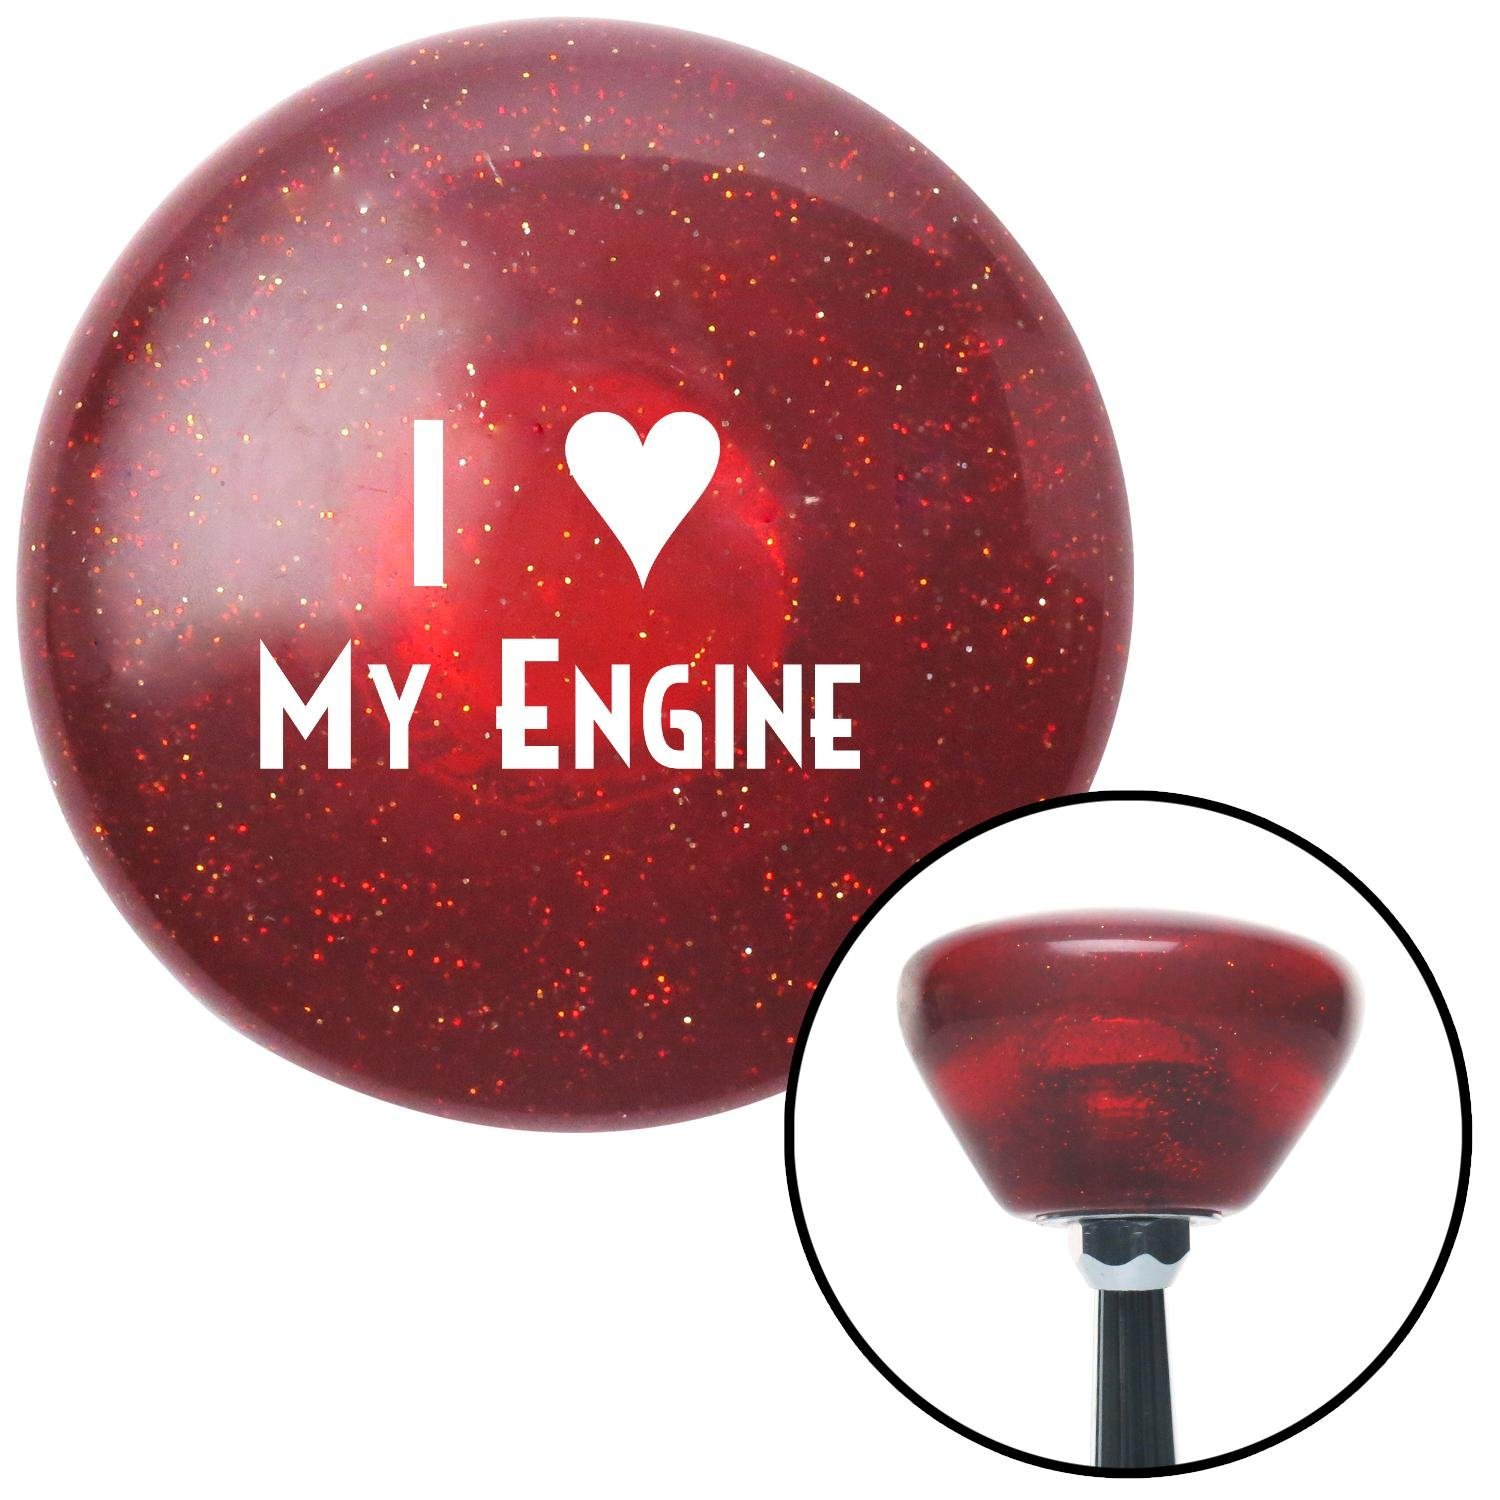 American Shifter 194639 Red Retro Metal Flake Shift Knob with M16 x 1.5 Insert White I 3 My Engine